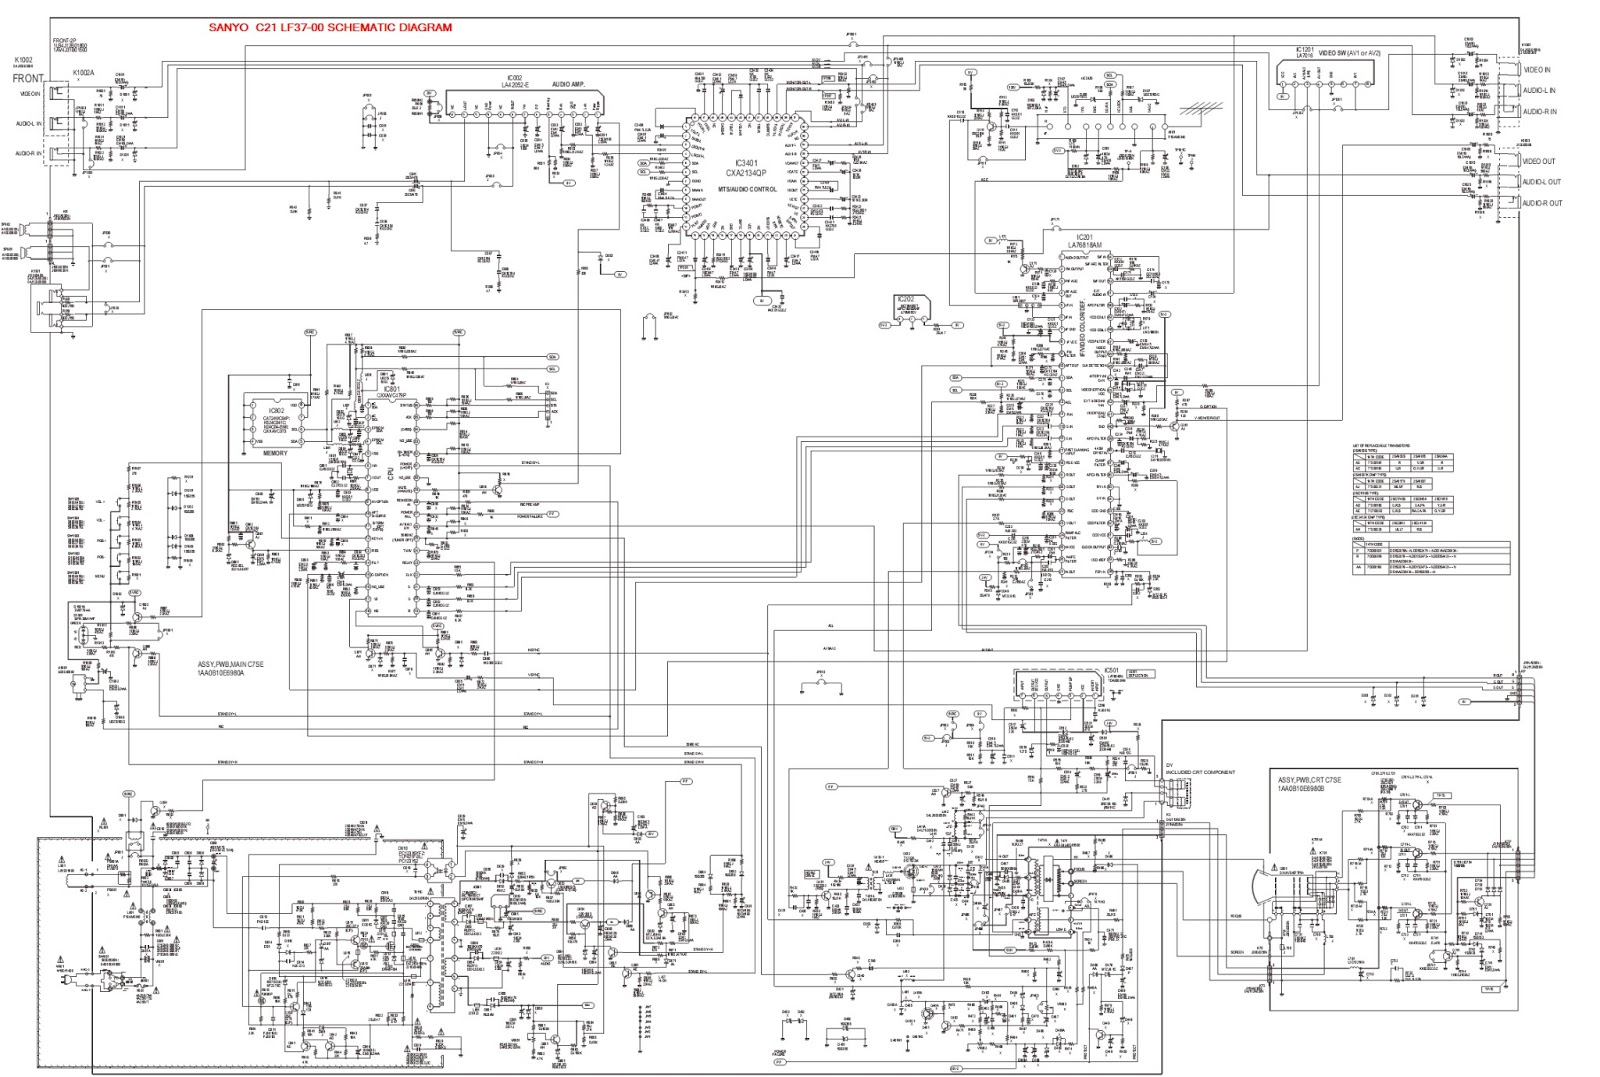 small resolution of sanyo tv circuit diagram wiring diagram third levelsanyo c21lf37 ctv schematic diagram circuit diagram